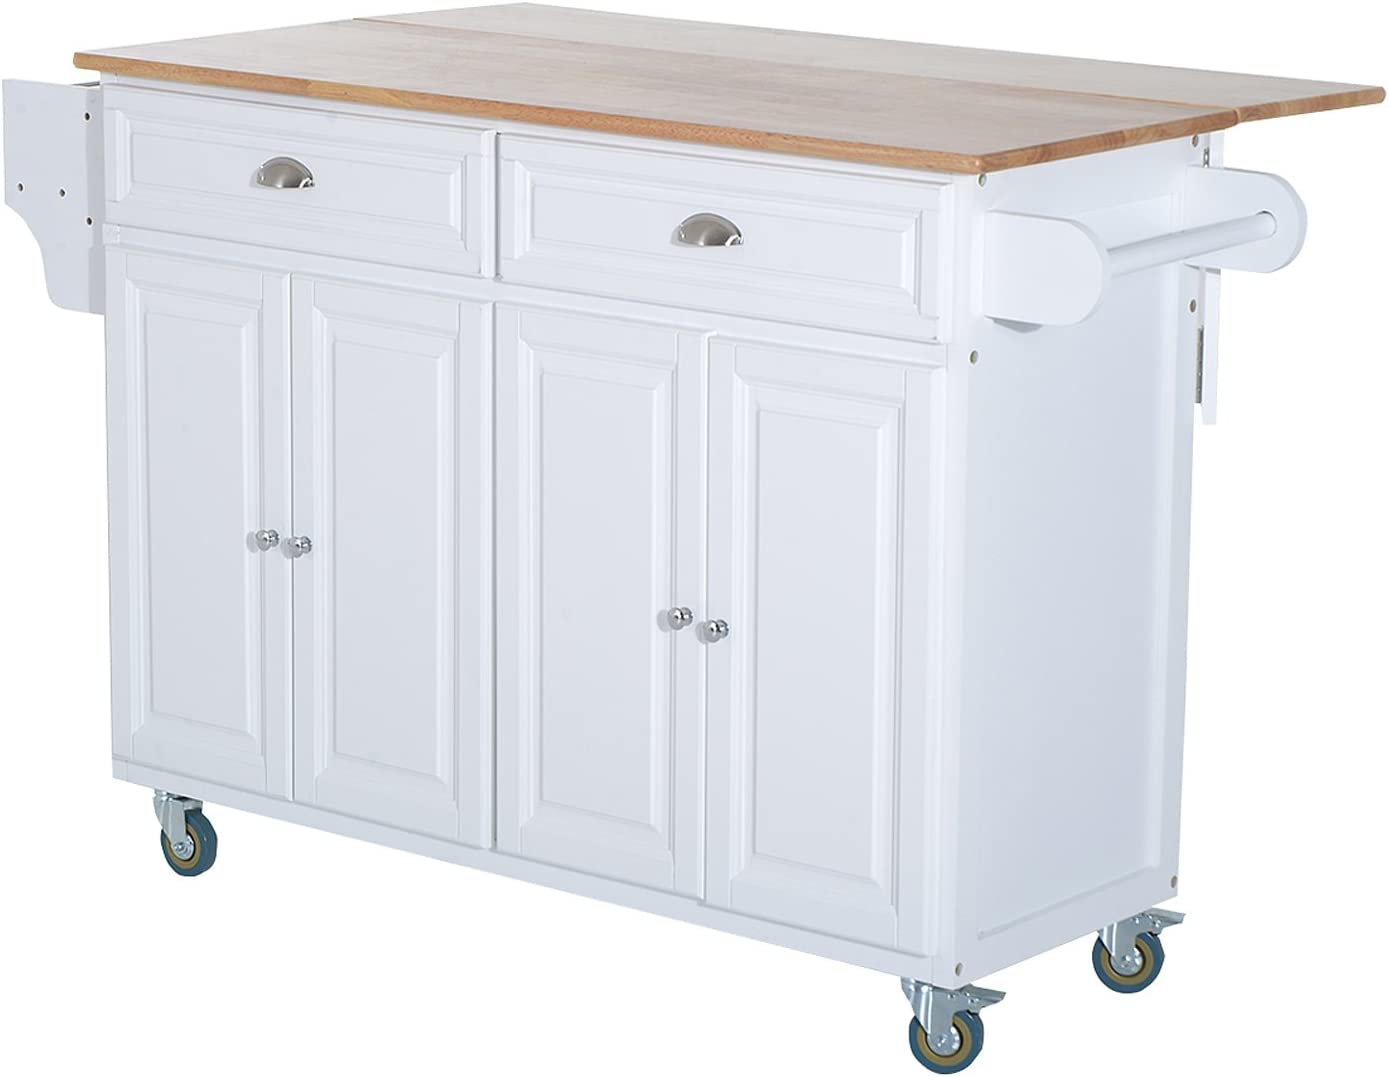 Amazon Com Homcom Rolling Oak Wood Drop Leaf Kitchen Island Cart With Storage And Butcher Block White Kitchen Islands Carts